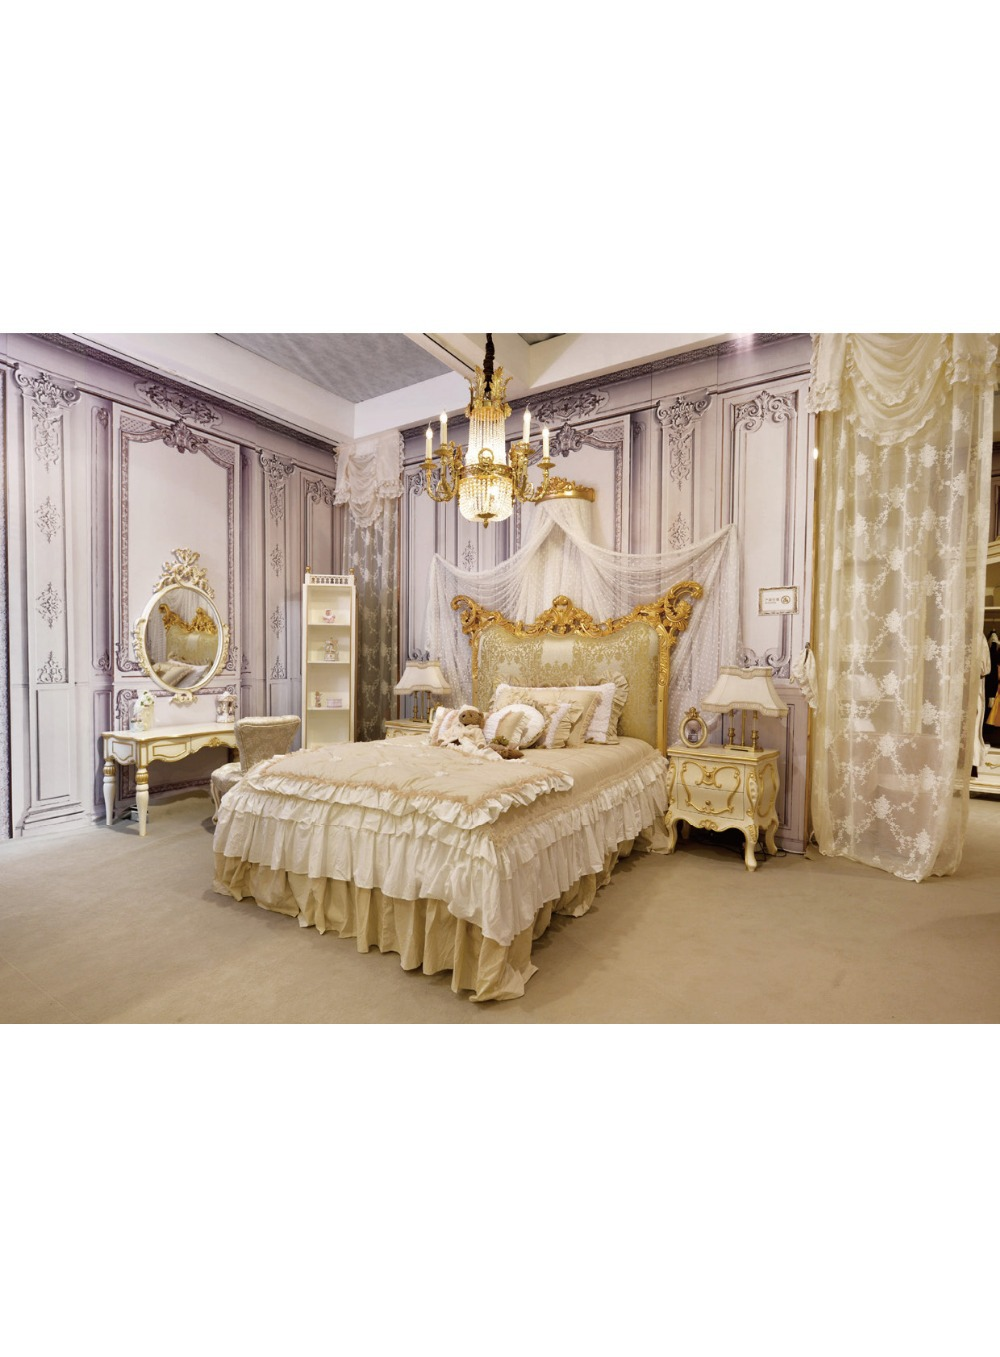 Charmant Get Quotations · European Style Kids Bedroom Set Kid Solid Wood Decorative  Furniture Luxurious Bed Multifunctional Cabinet